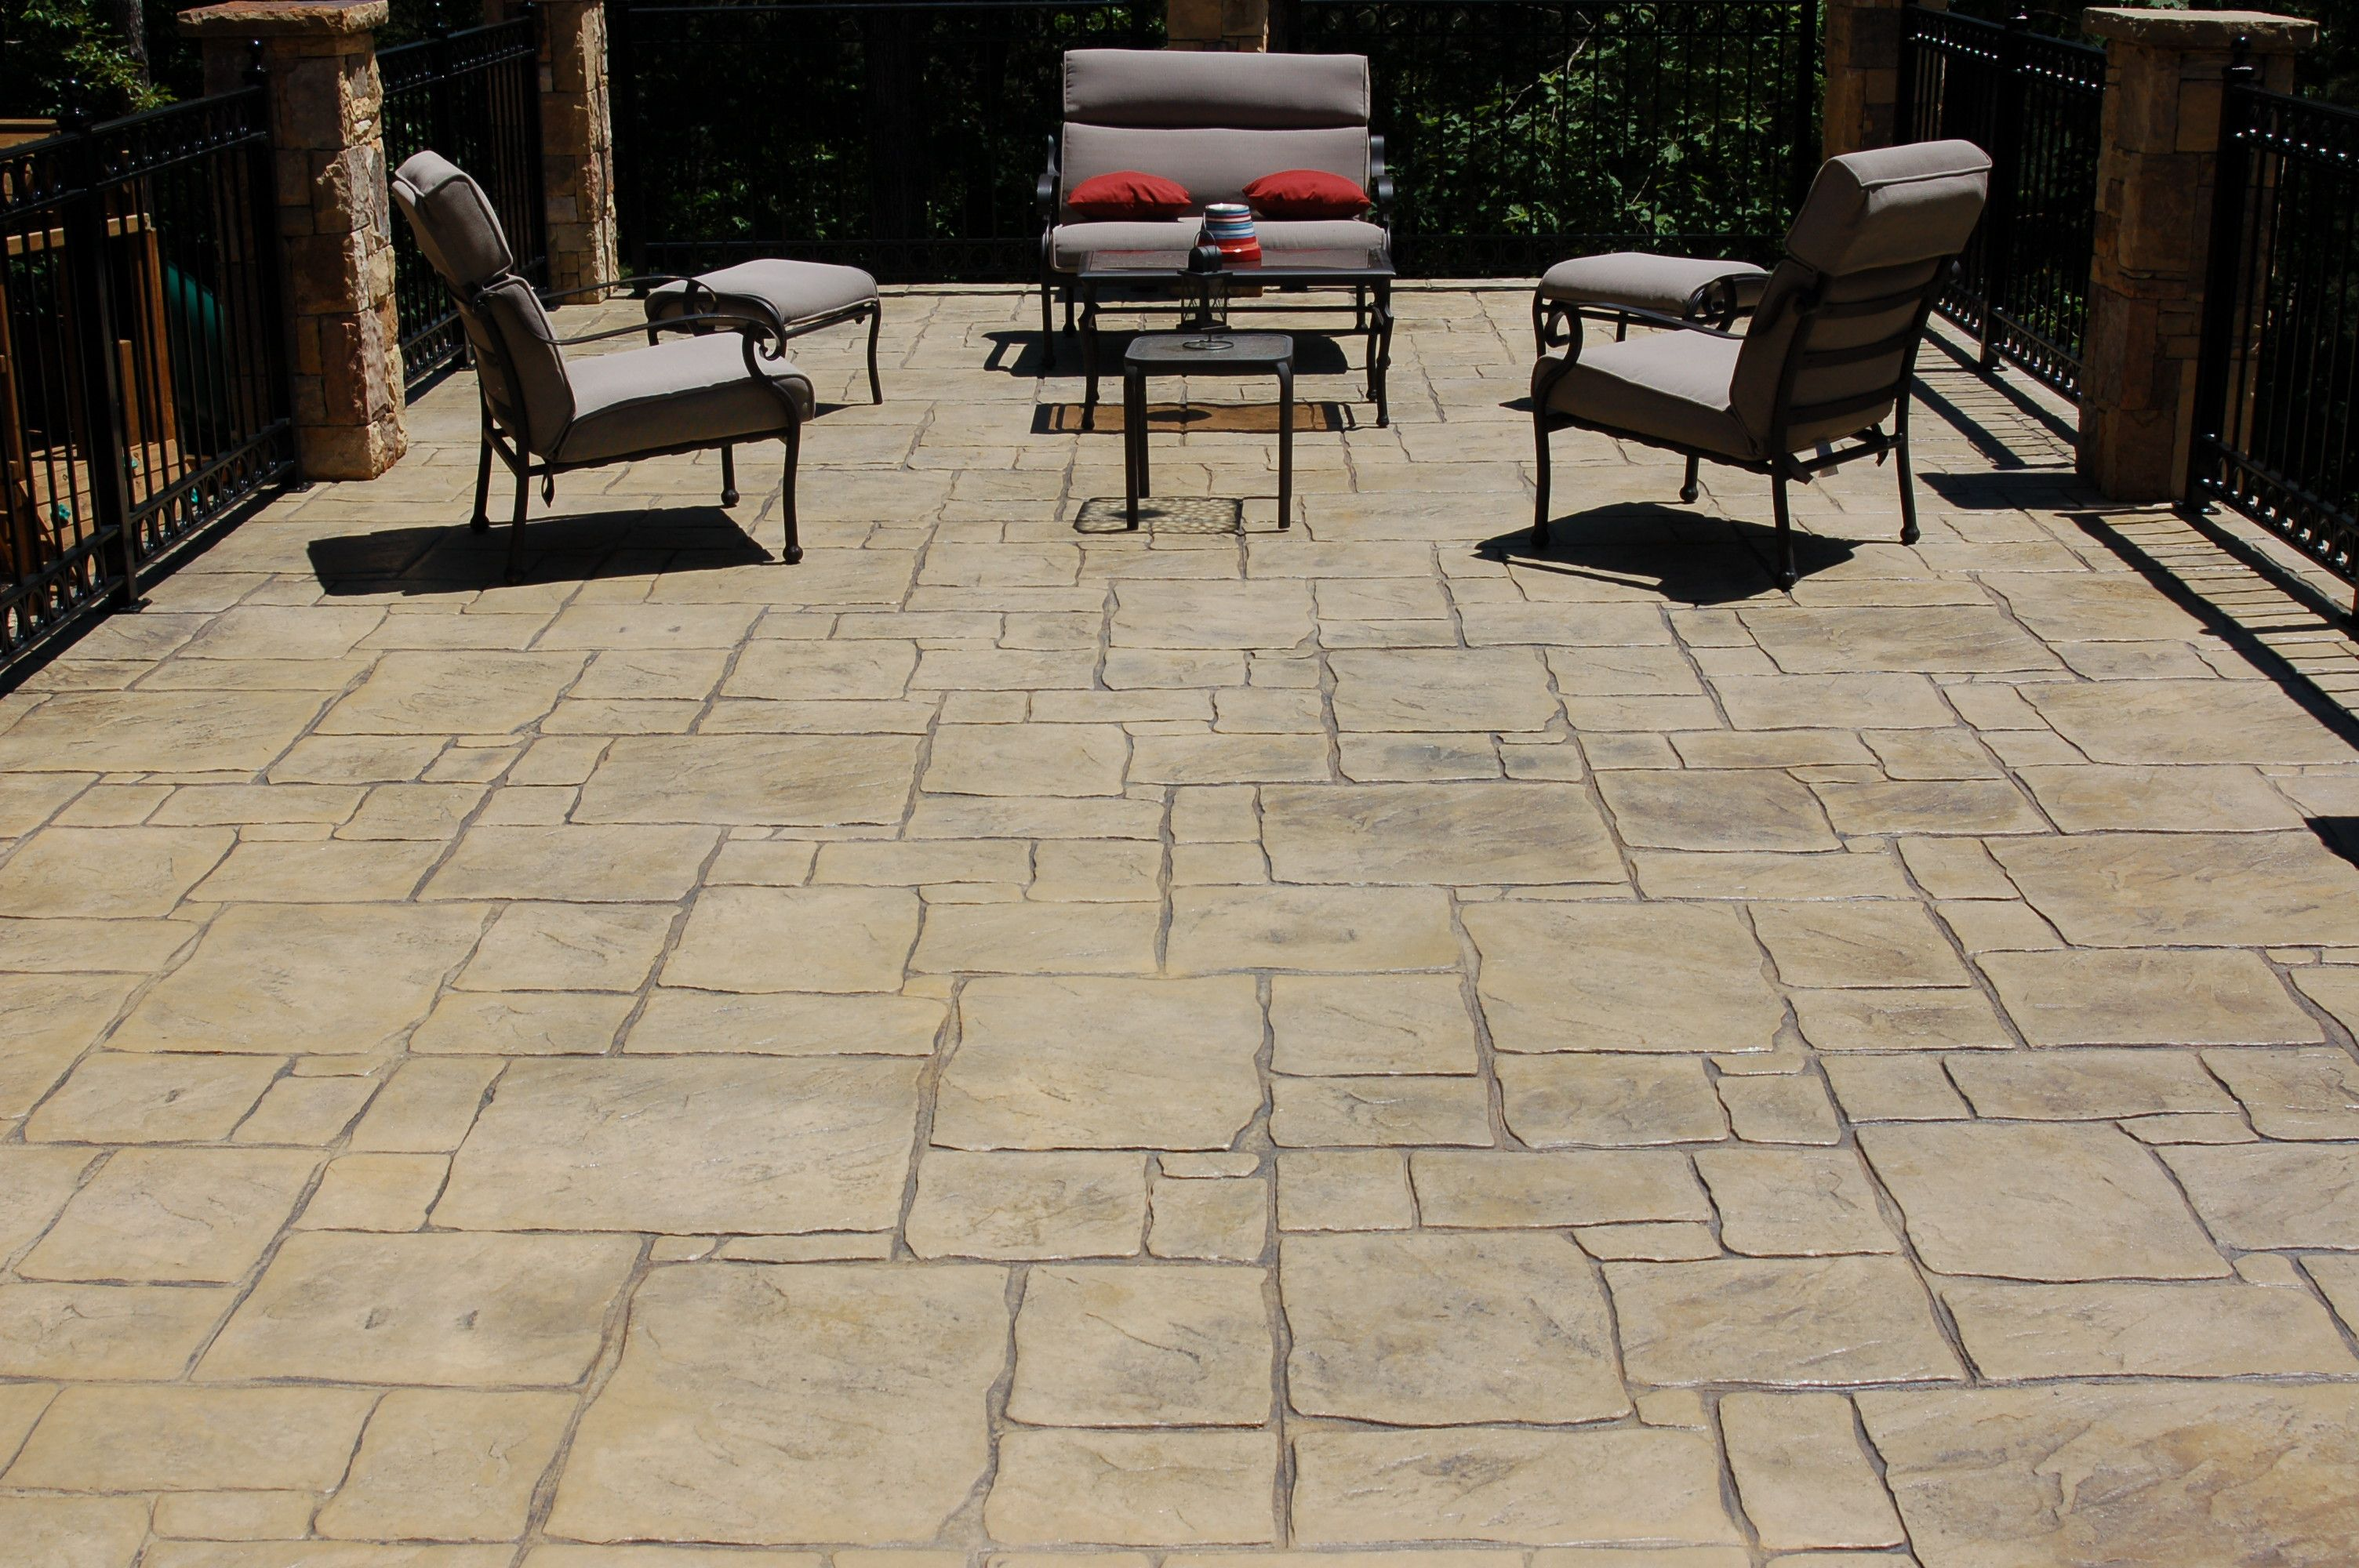 Attractive Decorative Concrete, Backyard Ideas, Terrace, Swim, Patios, House Porch,  Swimming, Patio, Terraces